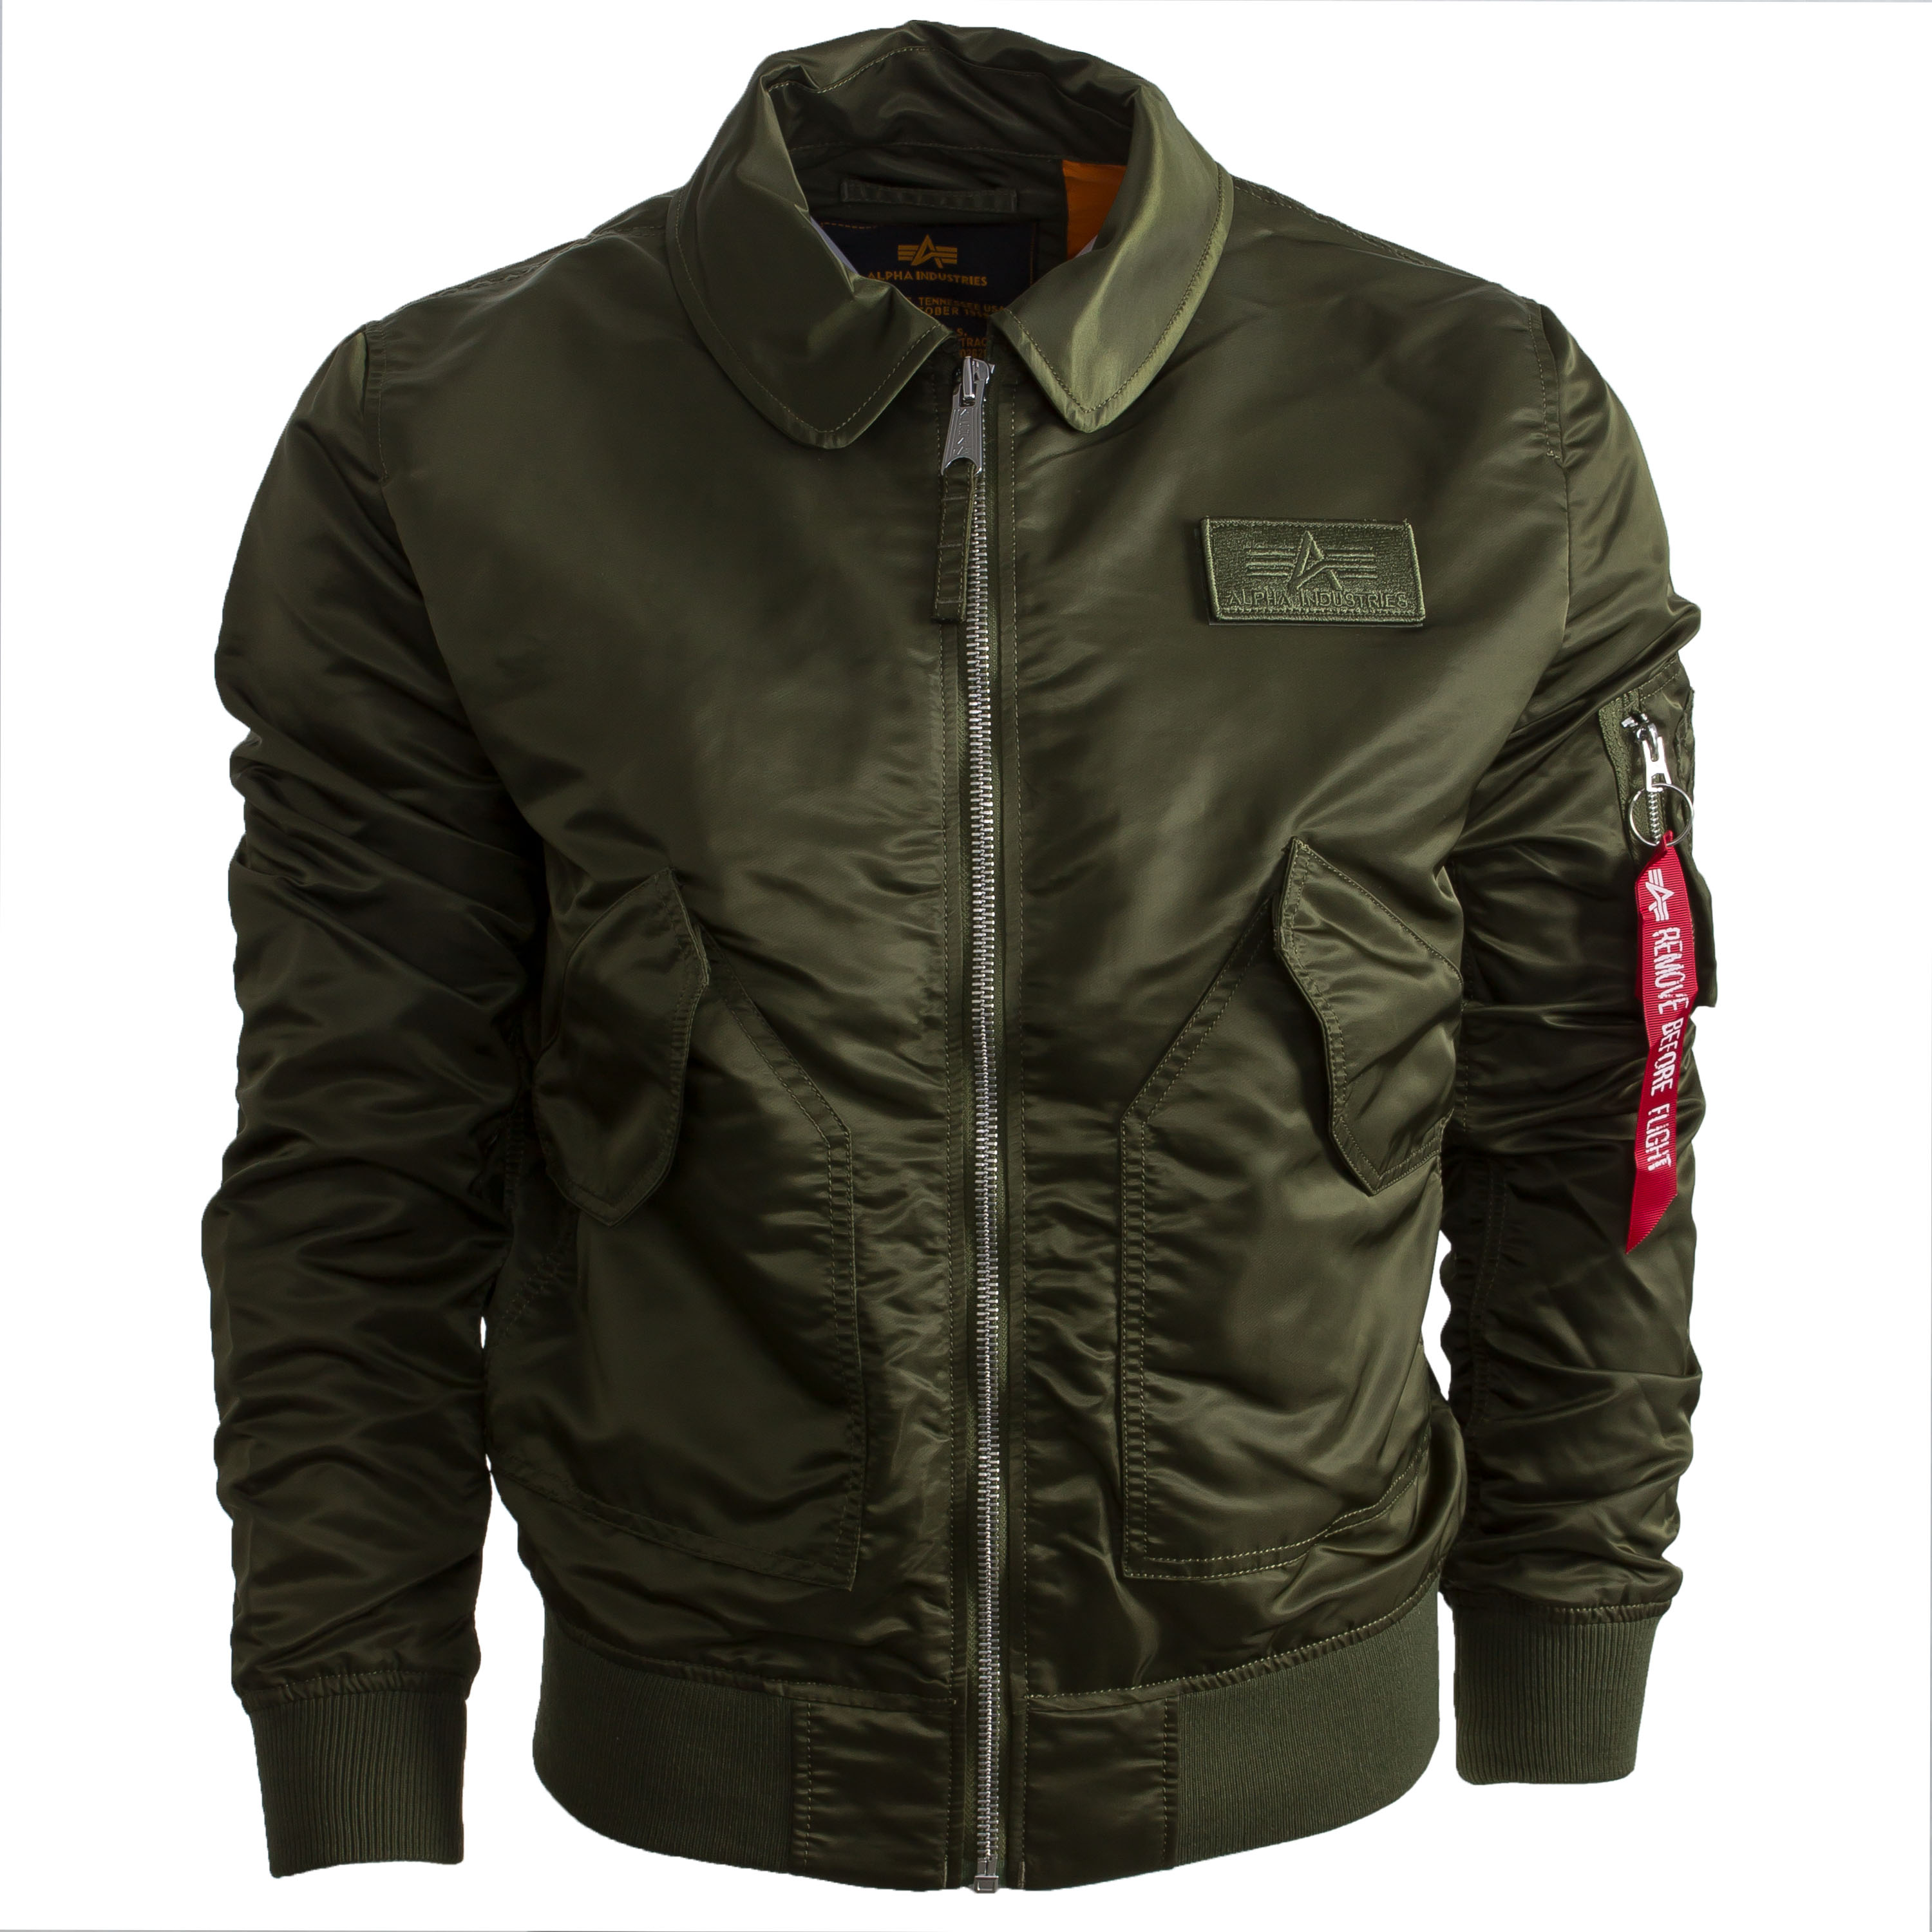 Alpha Industries Aviator Jacket CWU LW PM olive